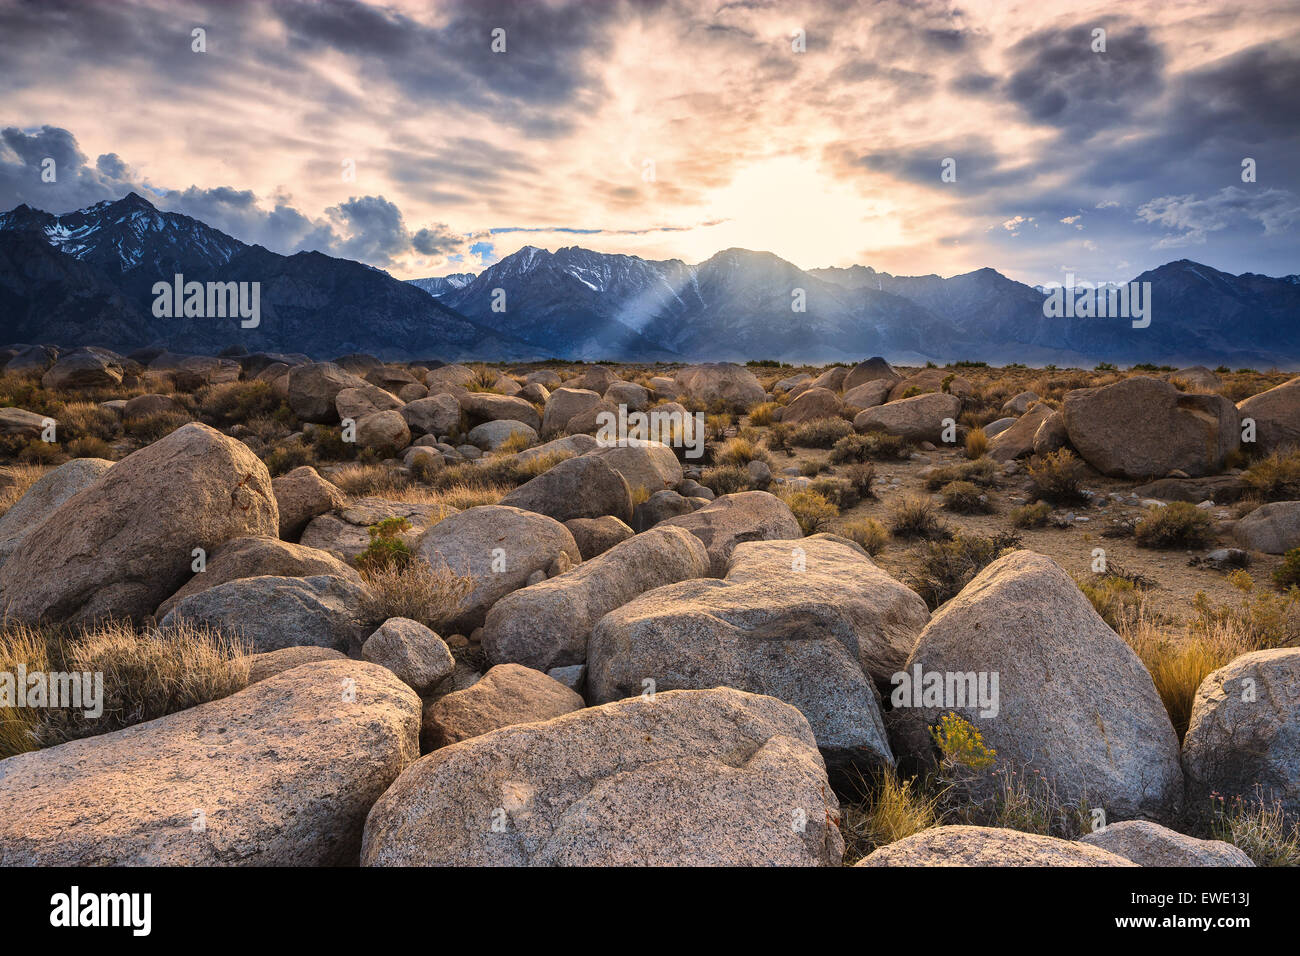 Coucher de soleil sur la Sierra Nevada de Manzanar, Californie, USA. Photo Stock